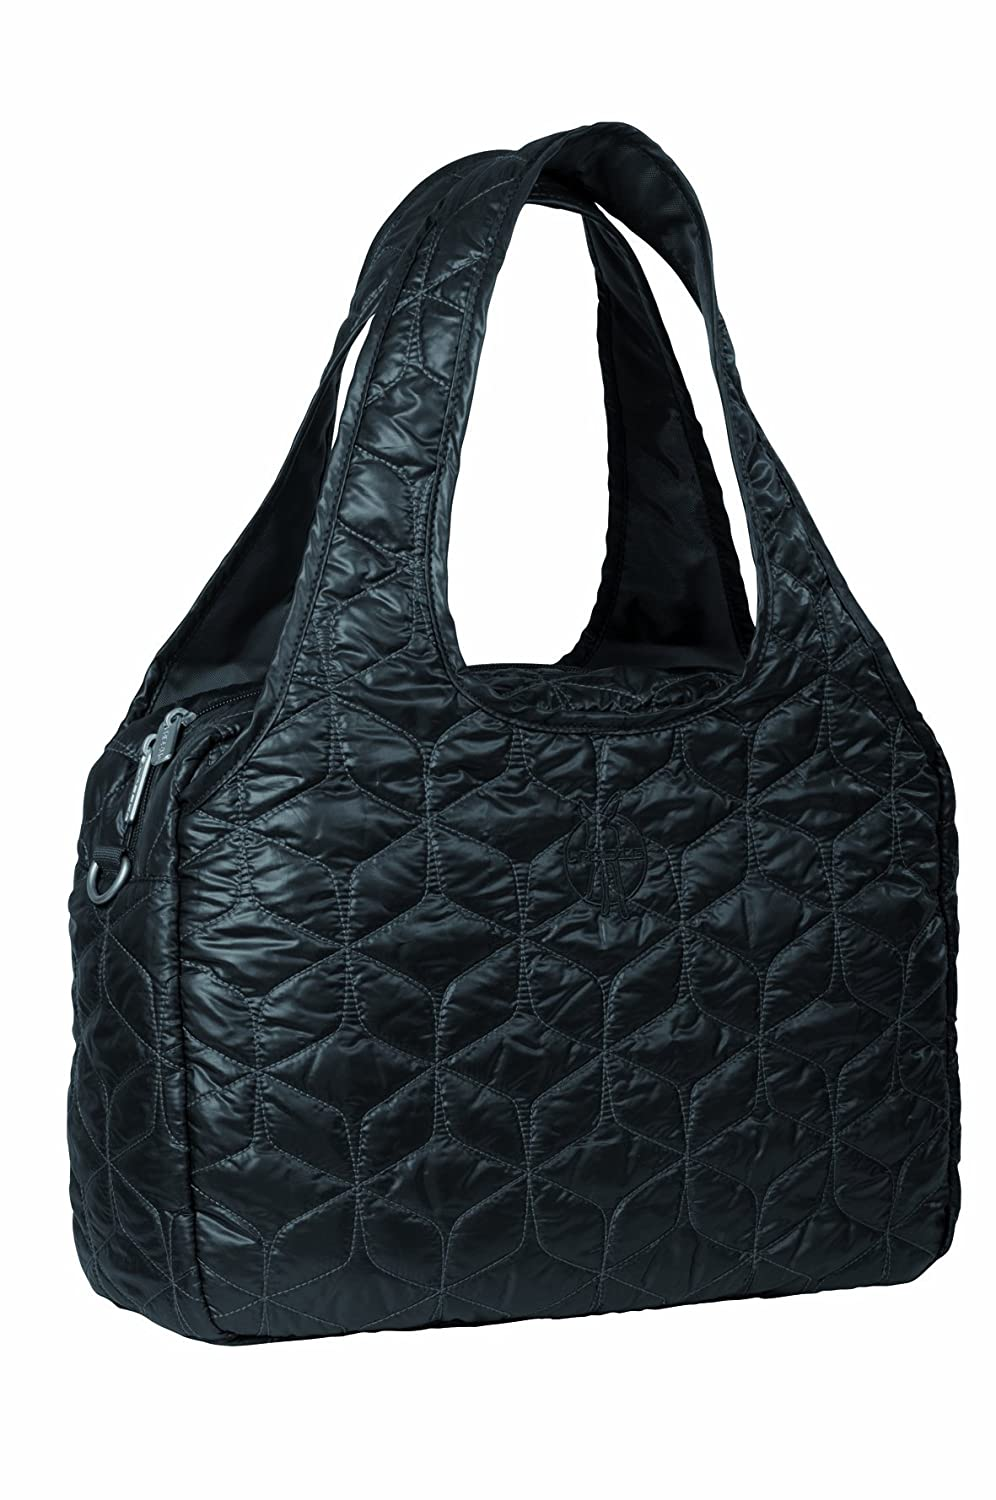 Amazon.com : Glam Global bolsa de pañales, Negro ...